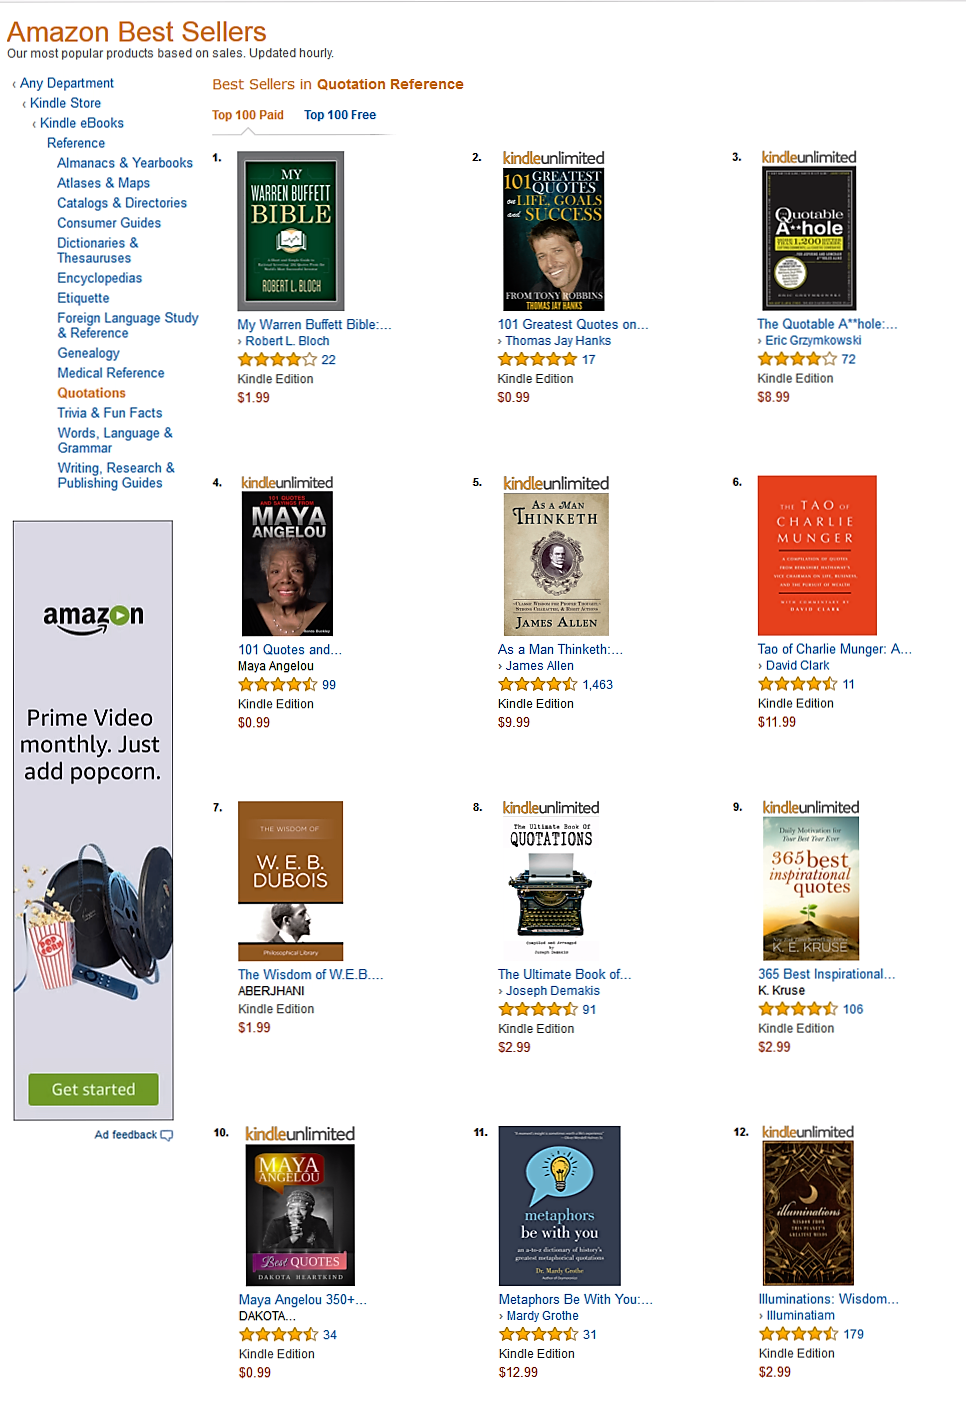 the wisdom of w e b du bois featuring essay commentaries by this image shows different amazon kindle titles the wisdom of w e b du bois at number 7 on the best sellers list